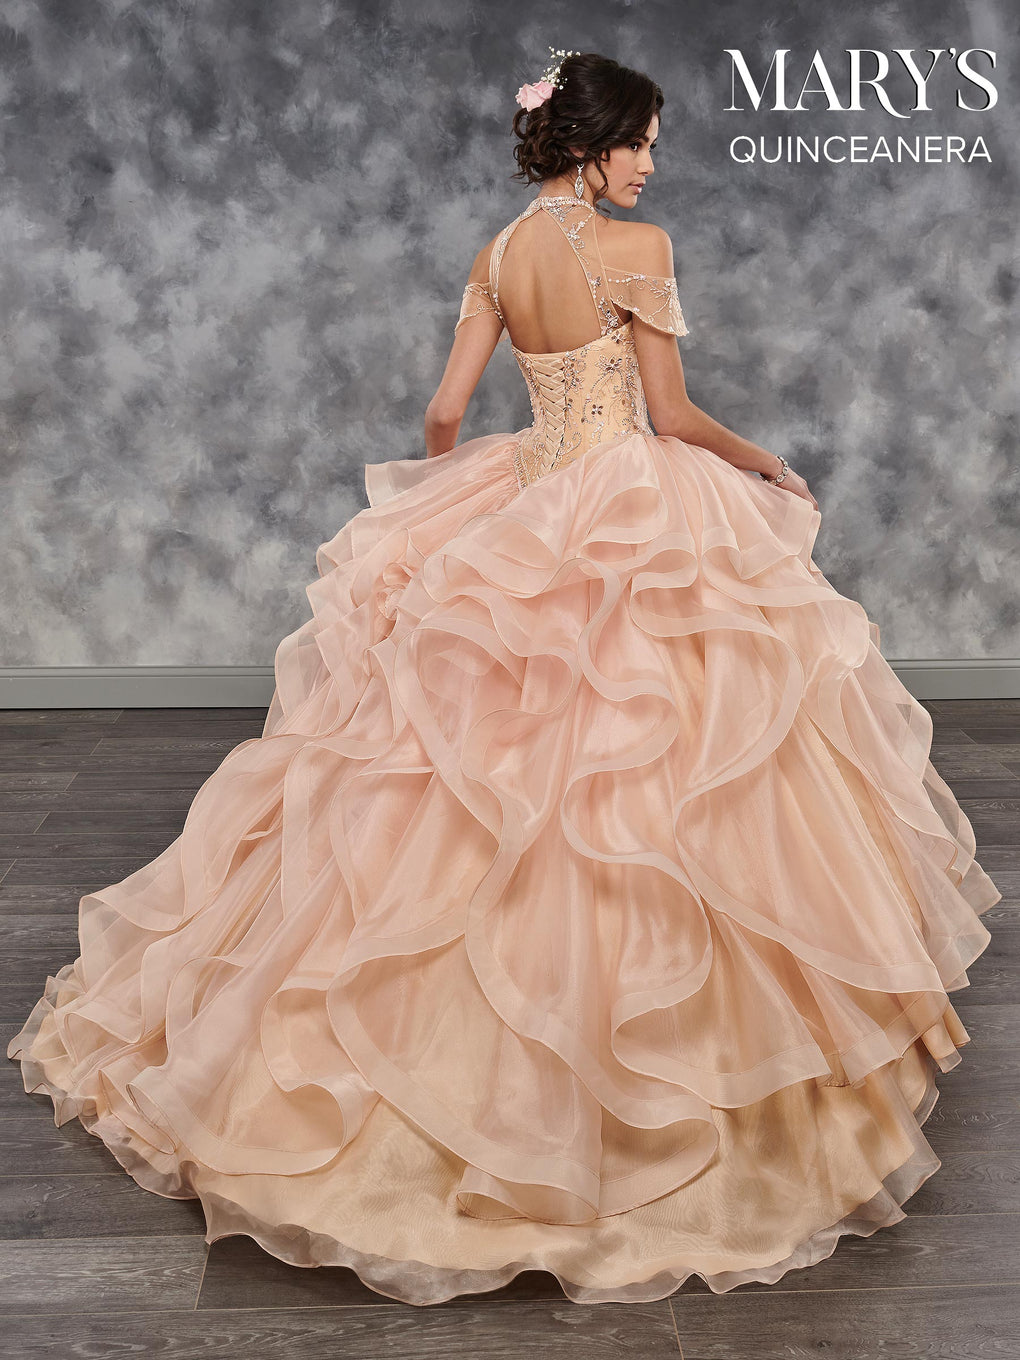 Marys Quinceanera Dresses in Cerise, Champagne, Royal, or White Color